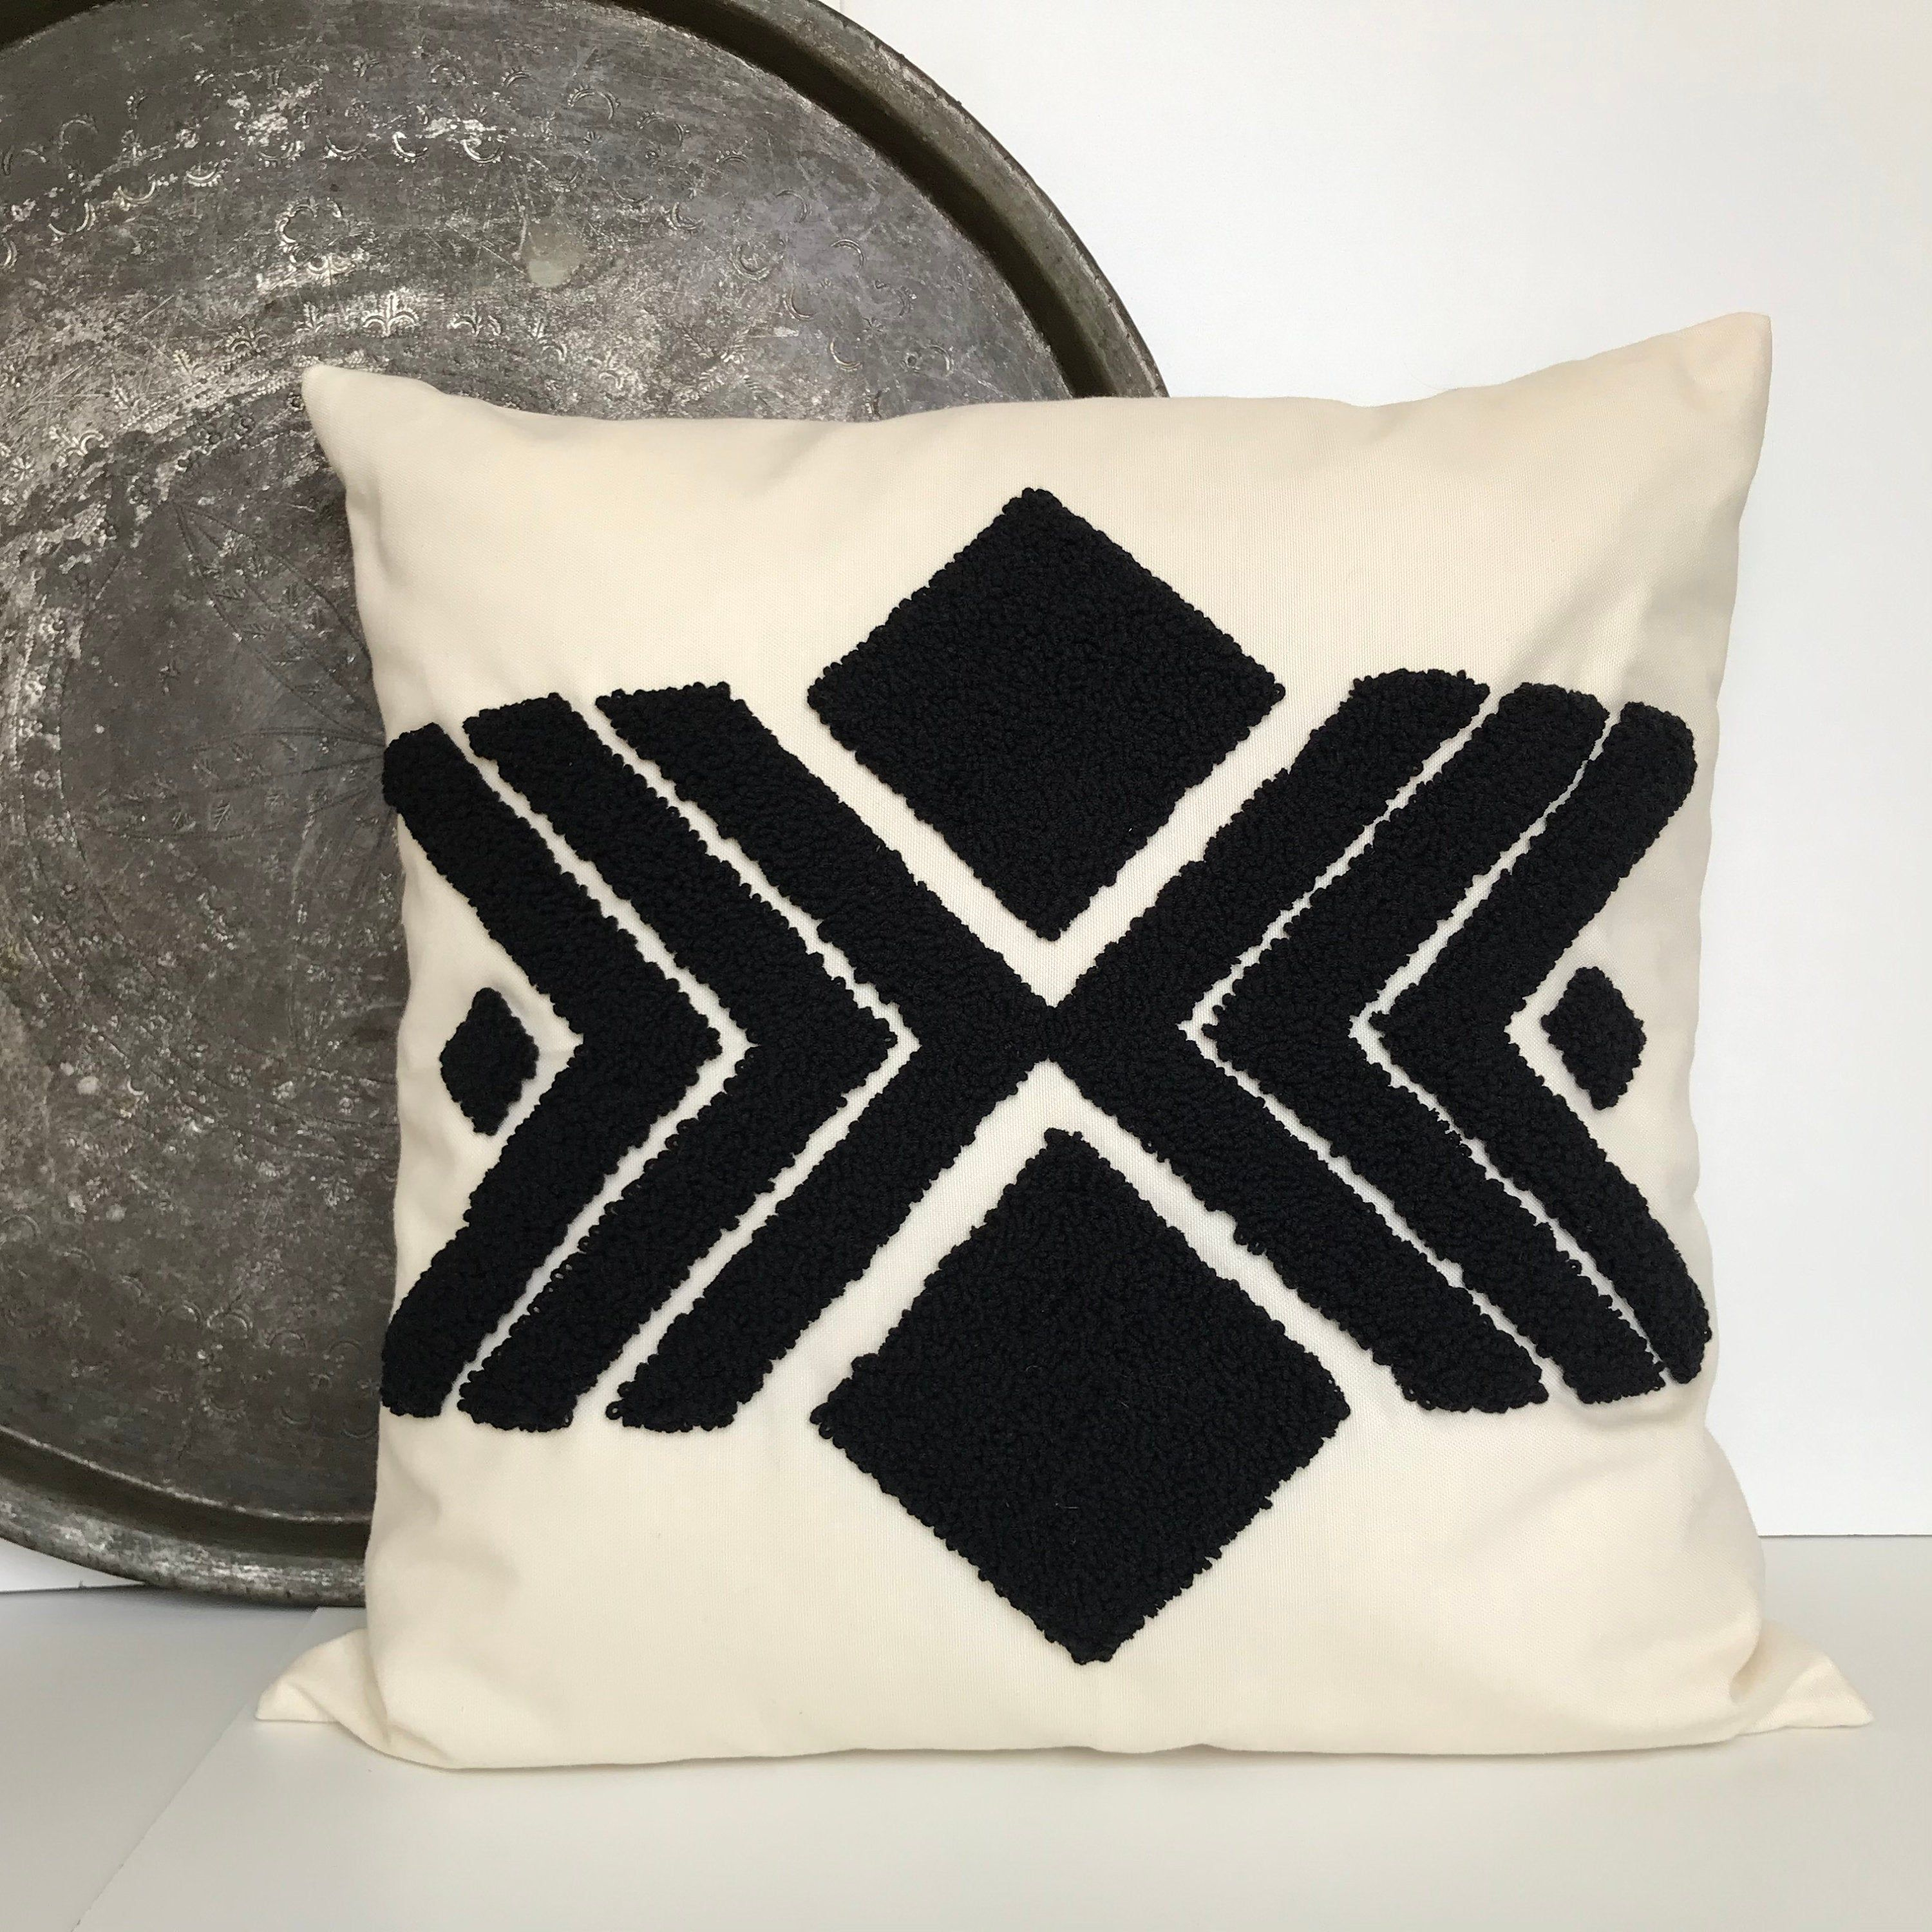 20*20 READY SHIP punch needle pillow Handmade Pillow Embroidery Pillow Case Punch home pillow Cover Cotton Pillow Case Black Pillow Cover